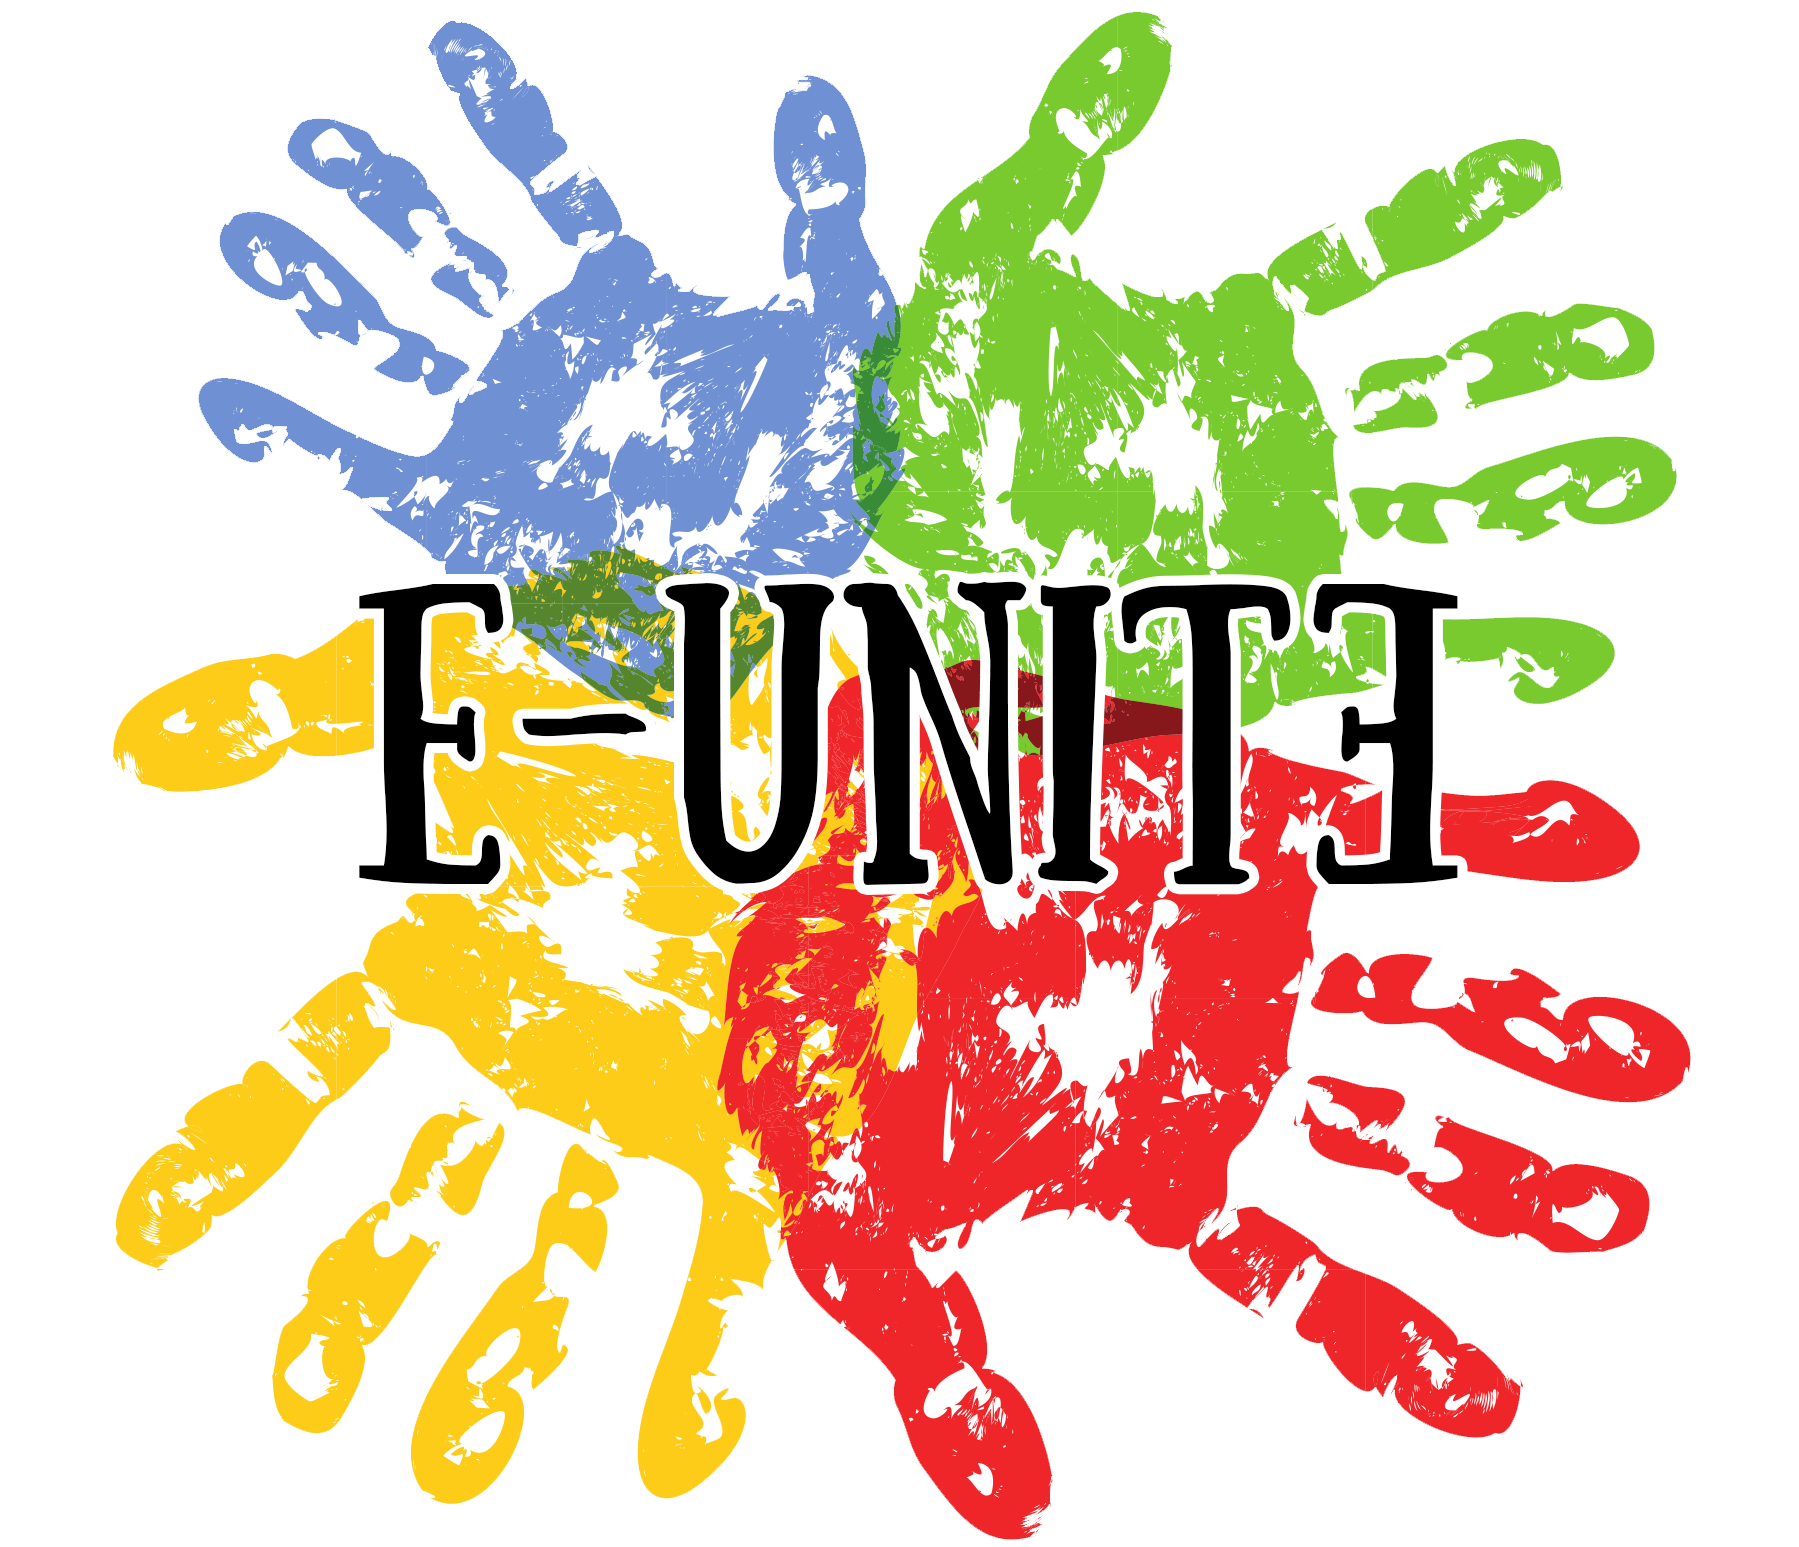 E-UNITING youth workers in Greece Promoting Diversity, Inclusiveness and Tolerance